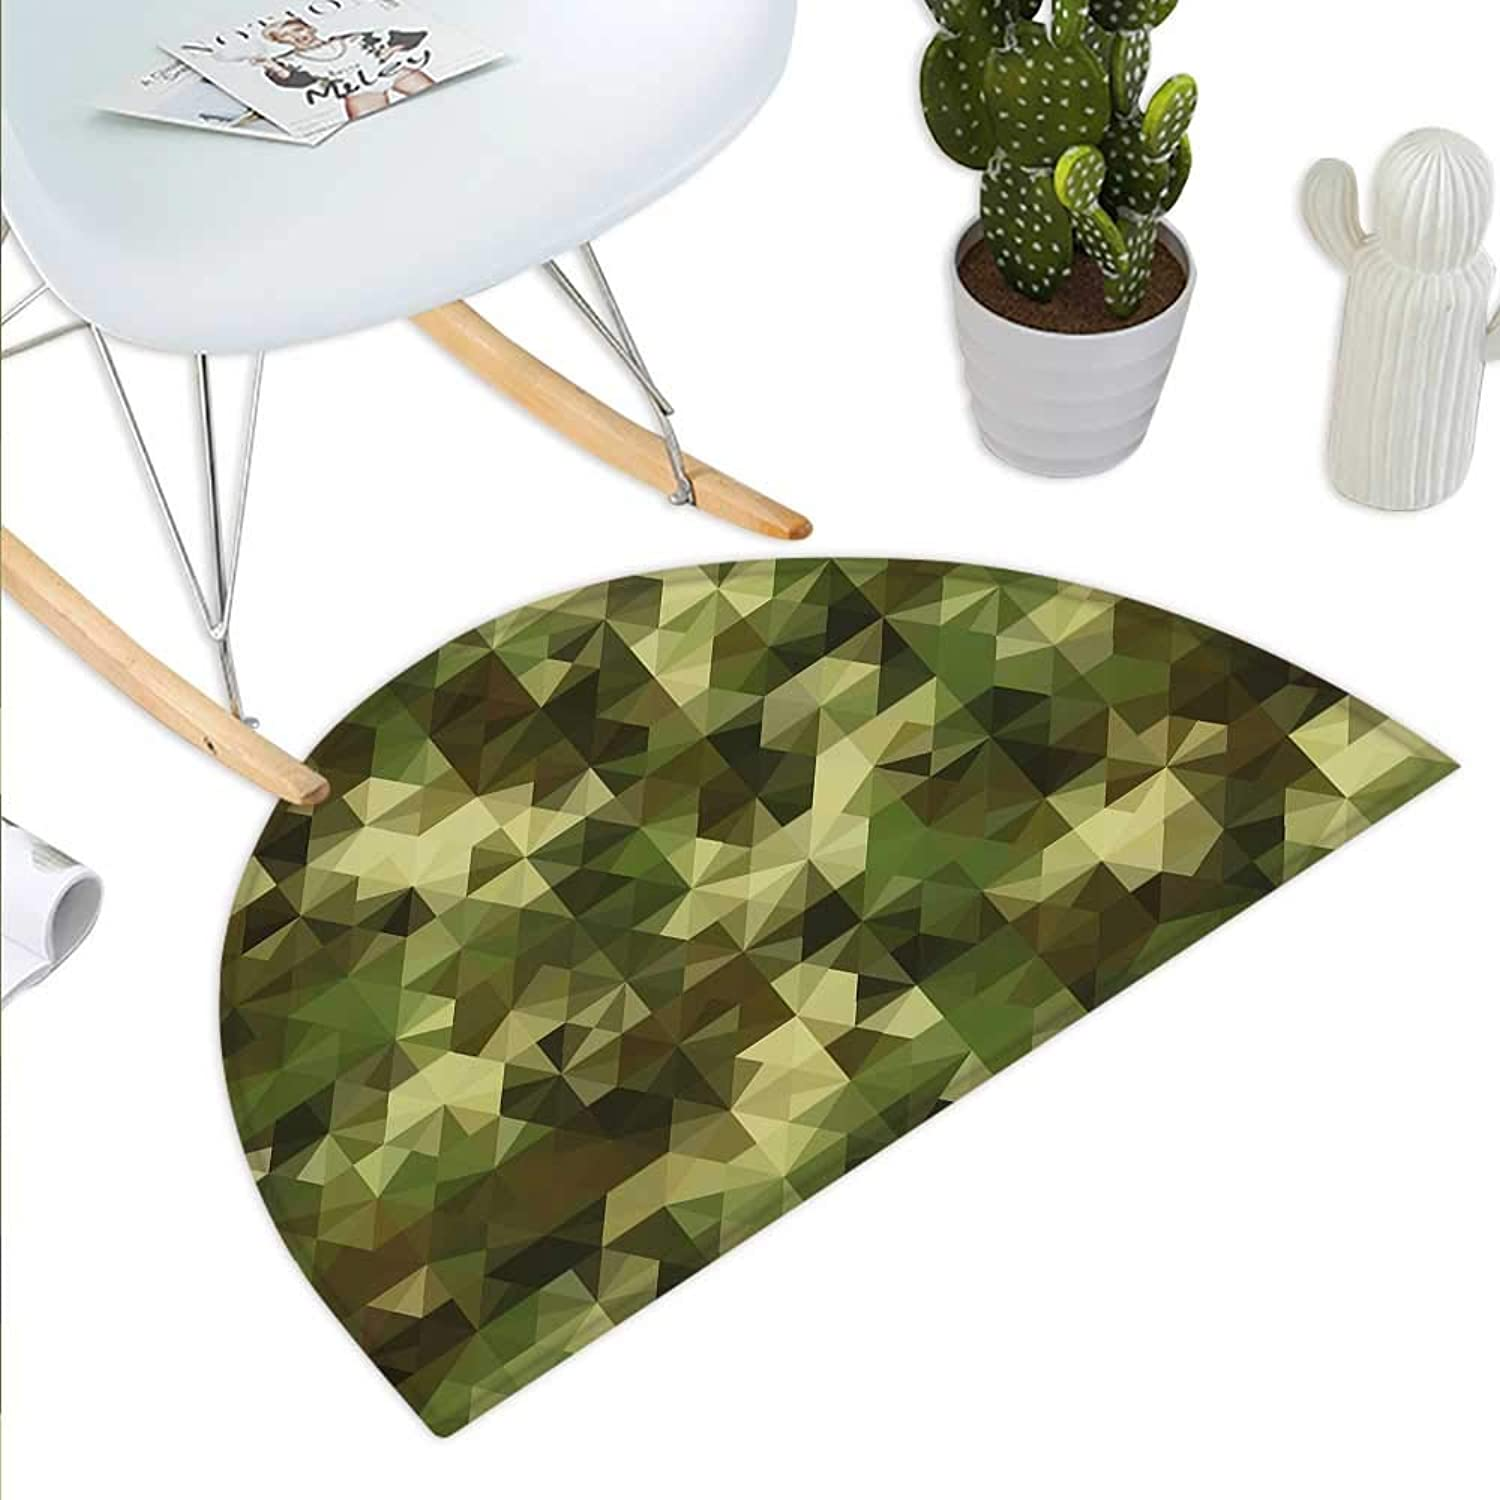 Sage Semicircle Doormat Abstract Camouflage Pattern with Fractal Look Geometric Triangles Shapes Mosaic Design Halfmoon doormats H 39.3  xD 59  Green